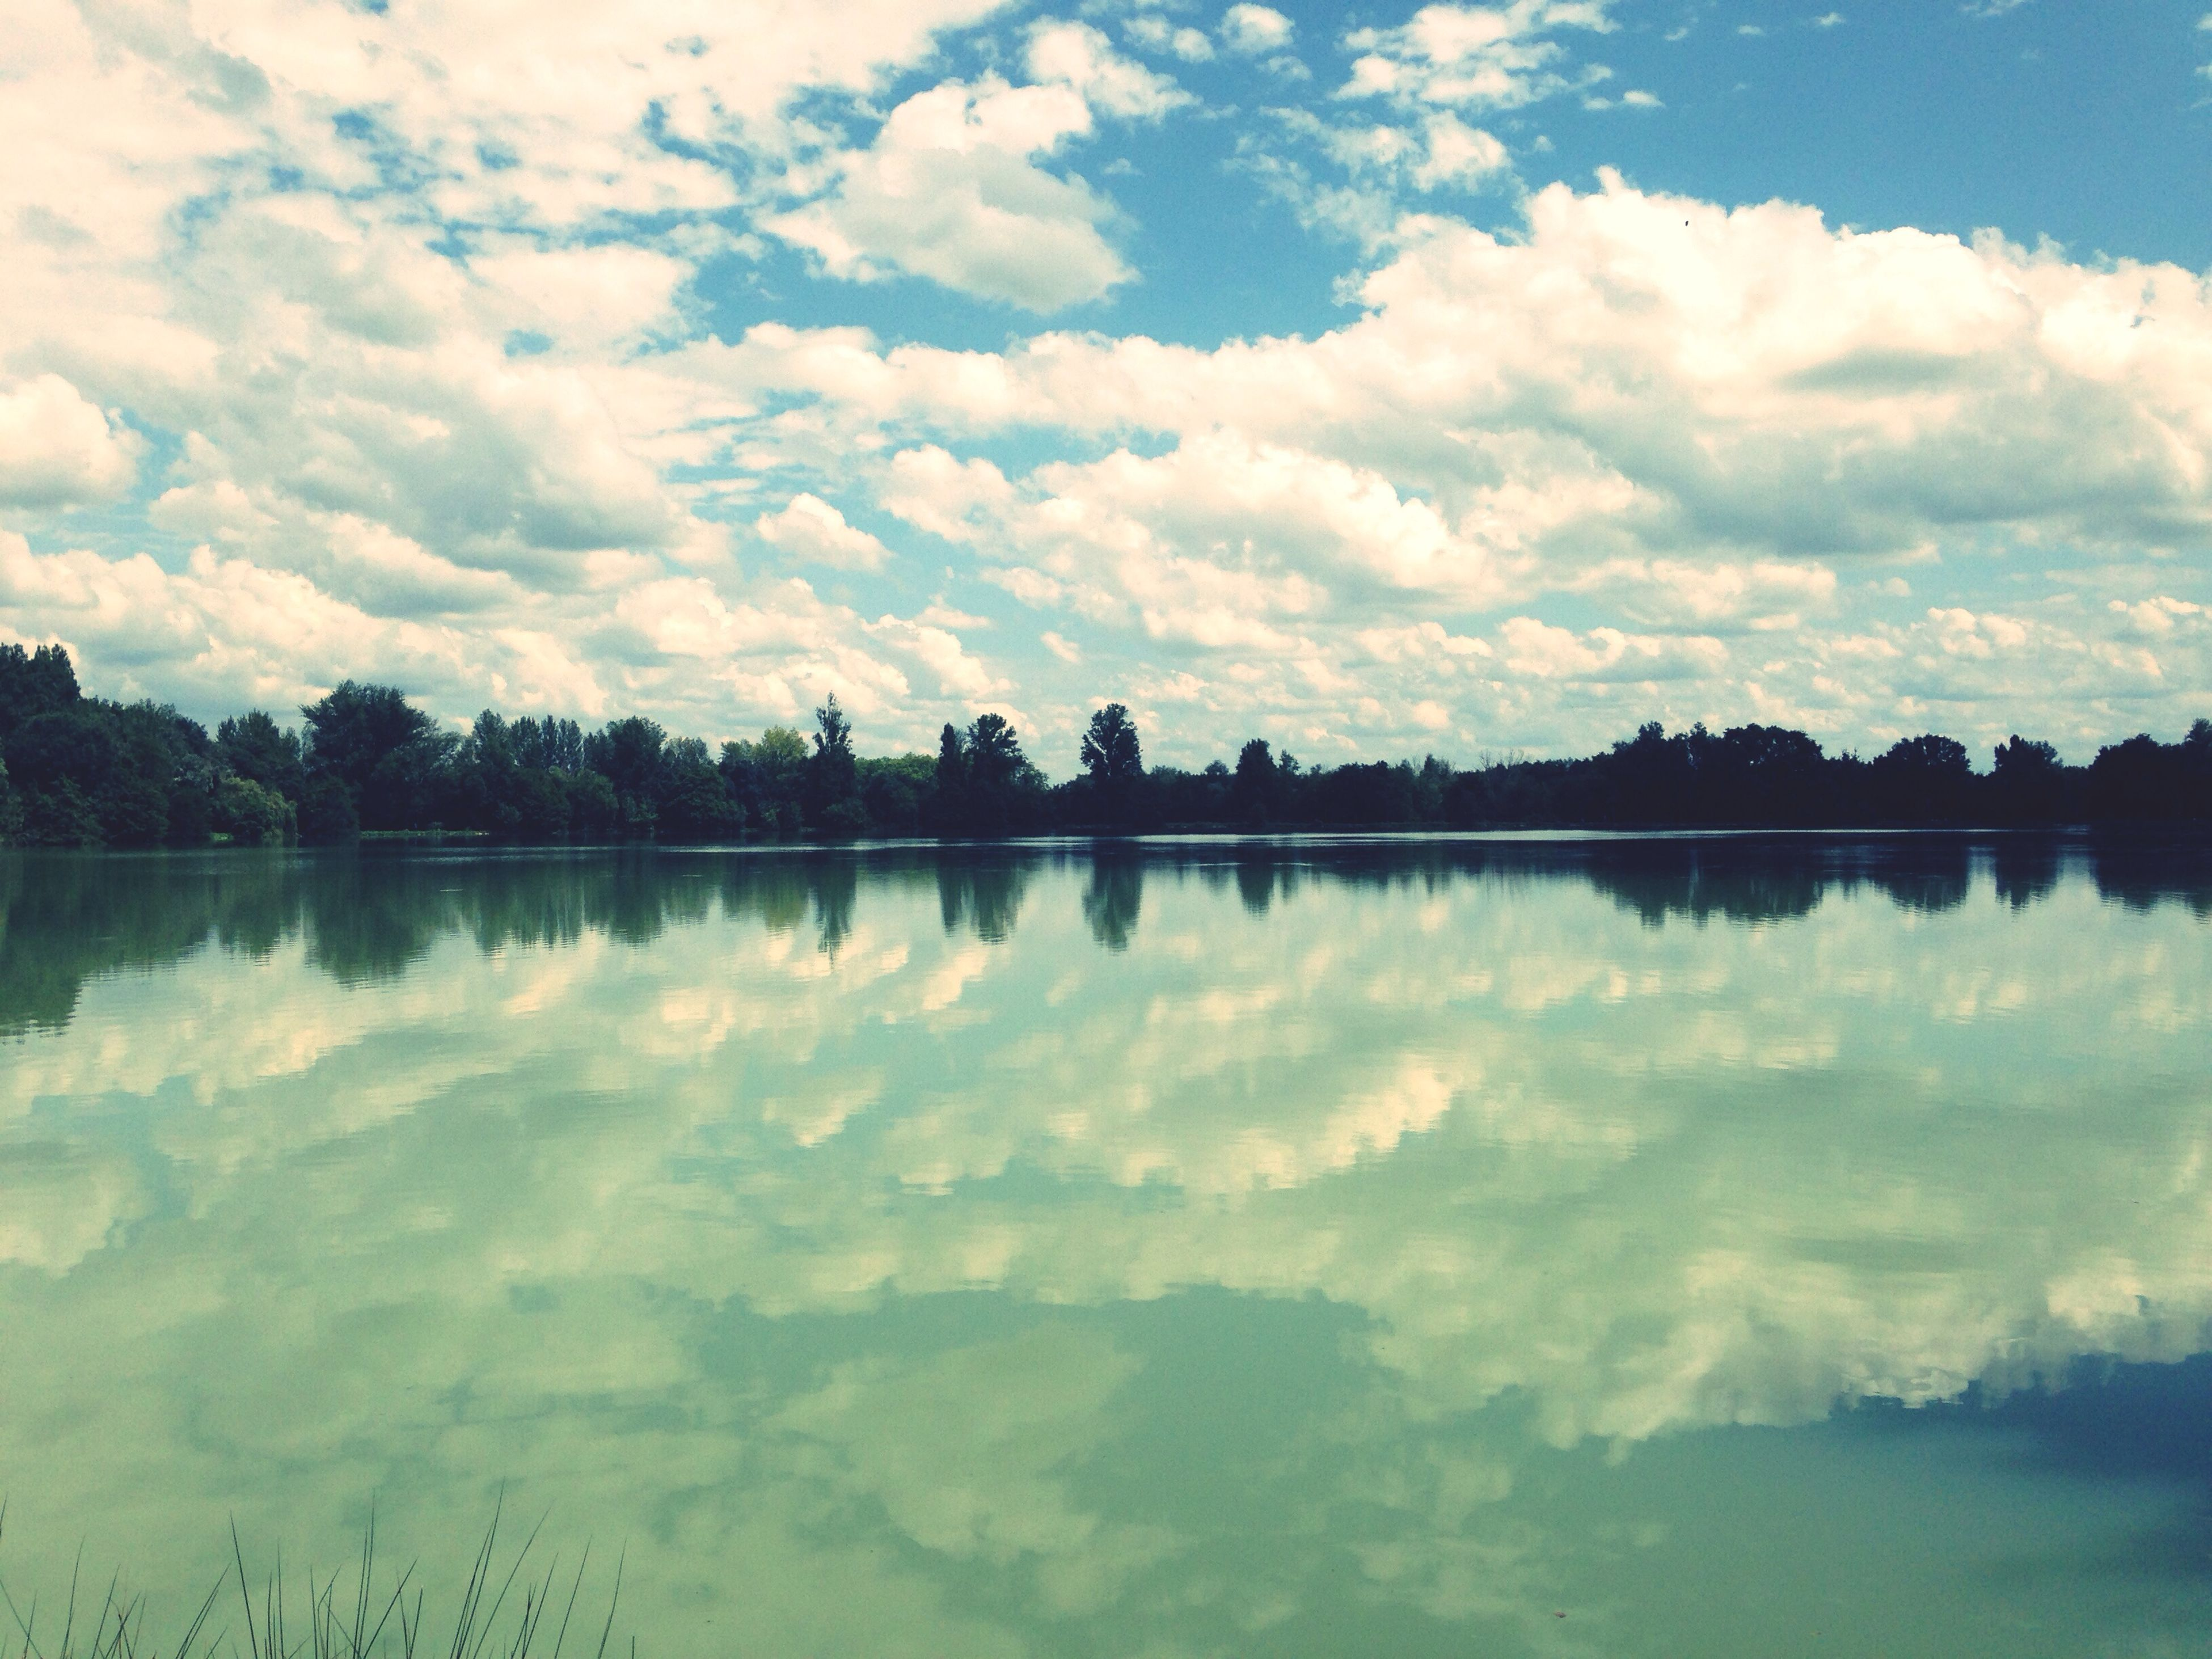 water, reflection, sky, lake, tranquil scene, tranquility, cloud - sky, scenics, beauty in nature, cloud, waterfront, nature, standing water, silhouette, tree, cloudy, calm, idyllic, outdoors, blue